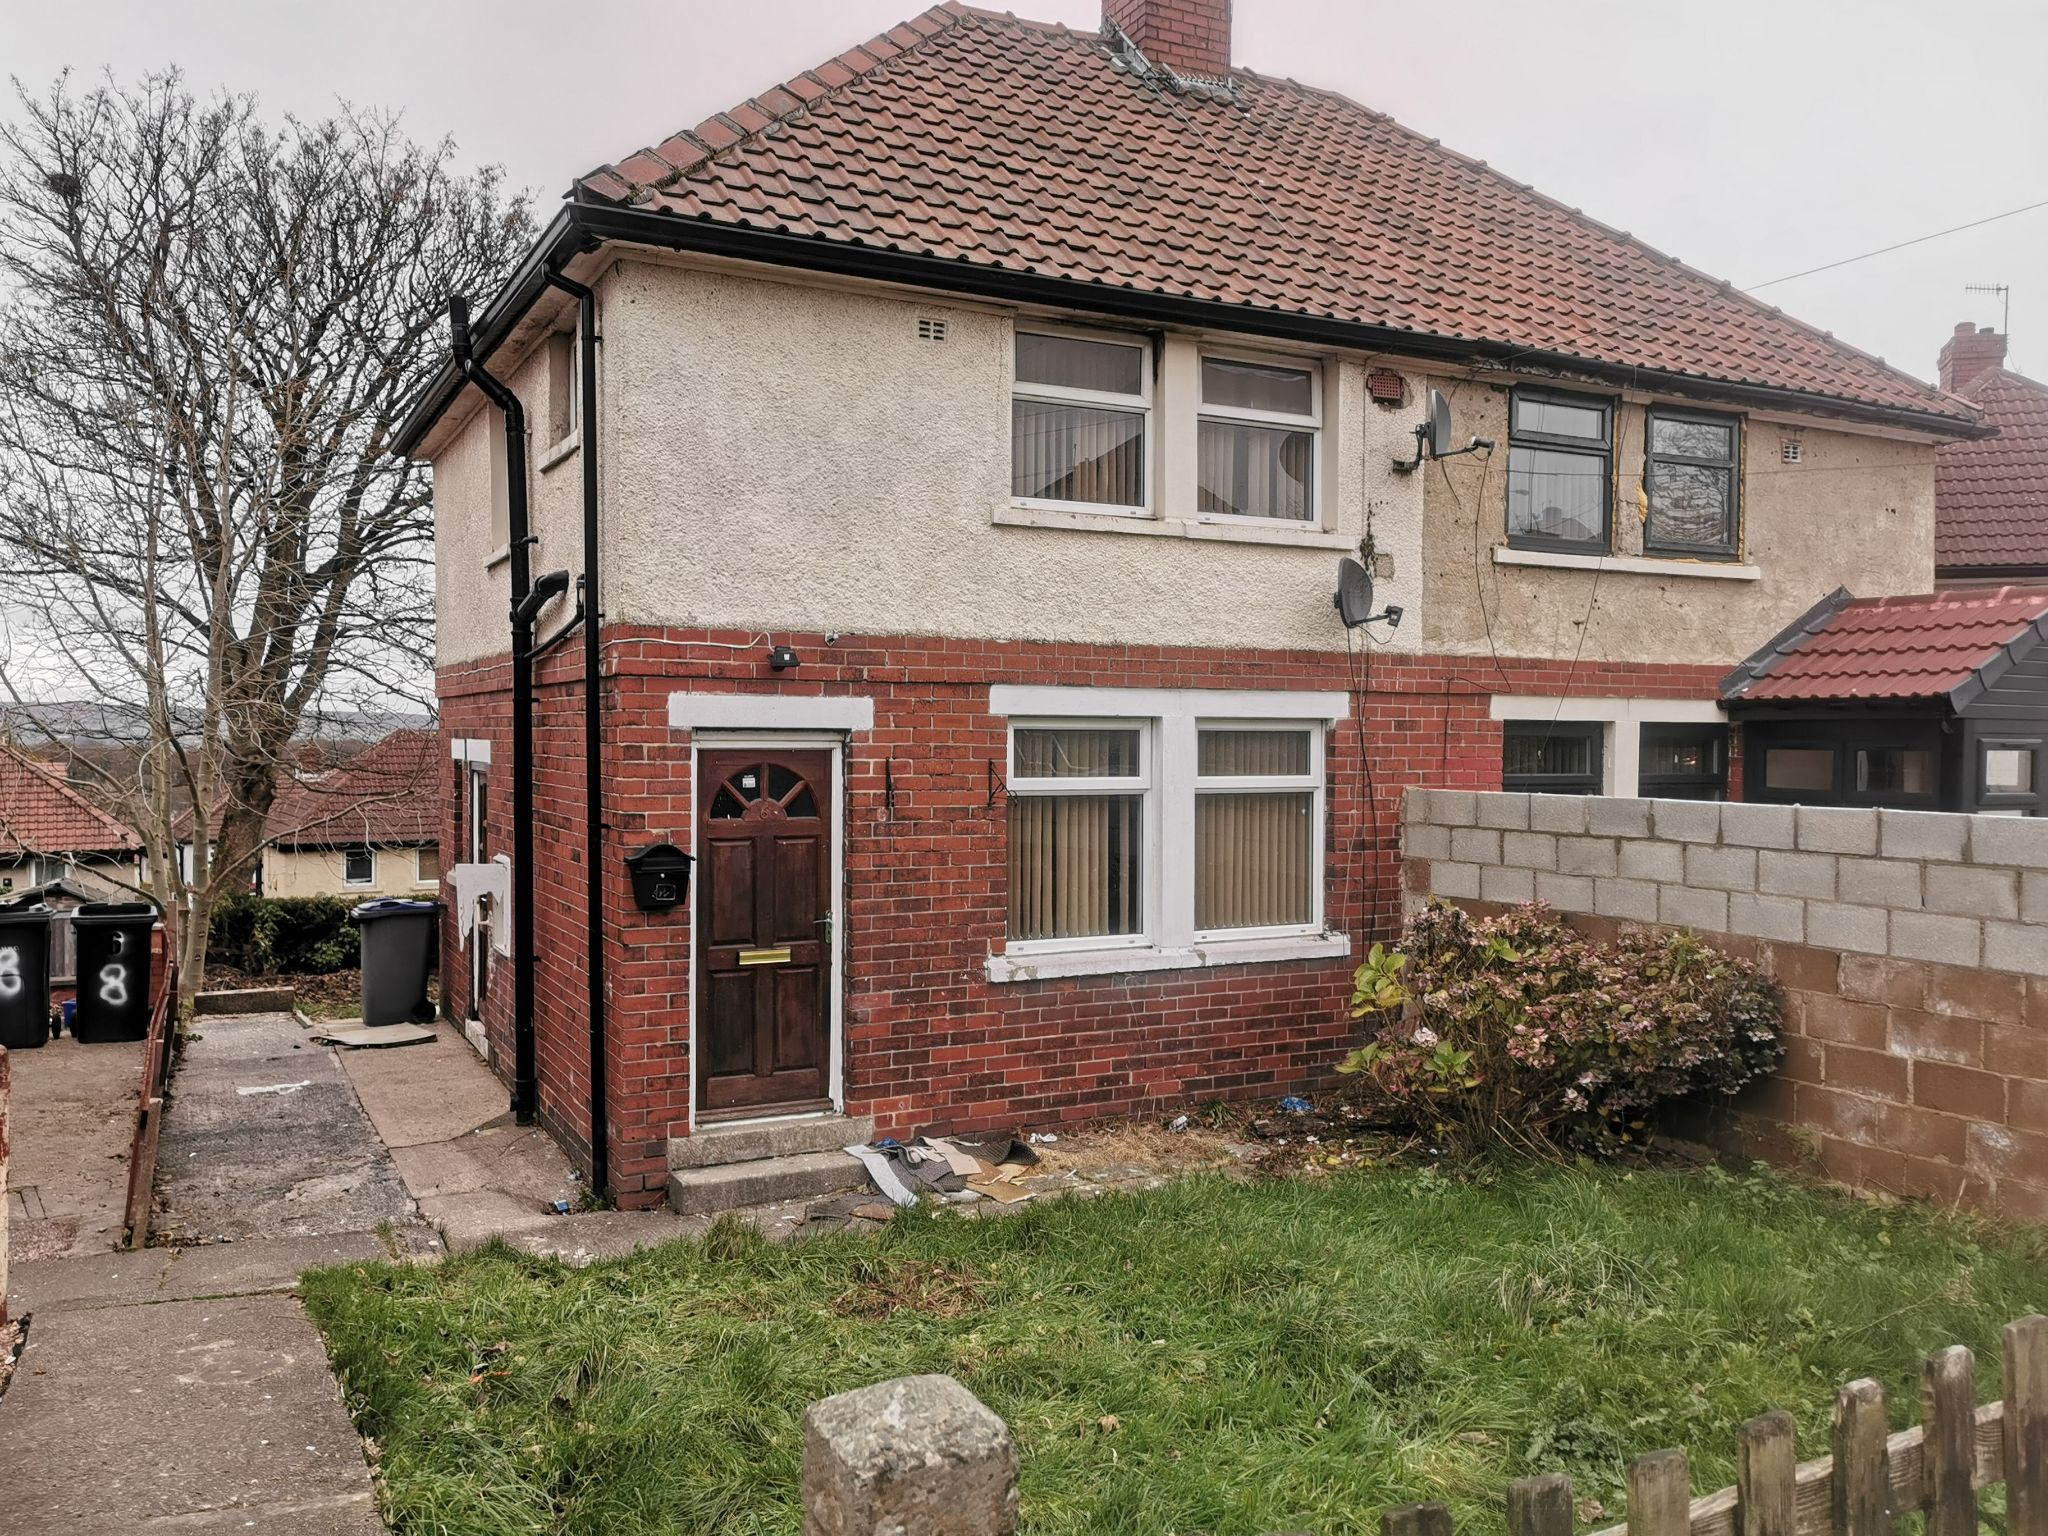 3 bedroom semi-detached house To Let in Bradford - Photograph 1.